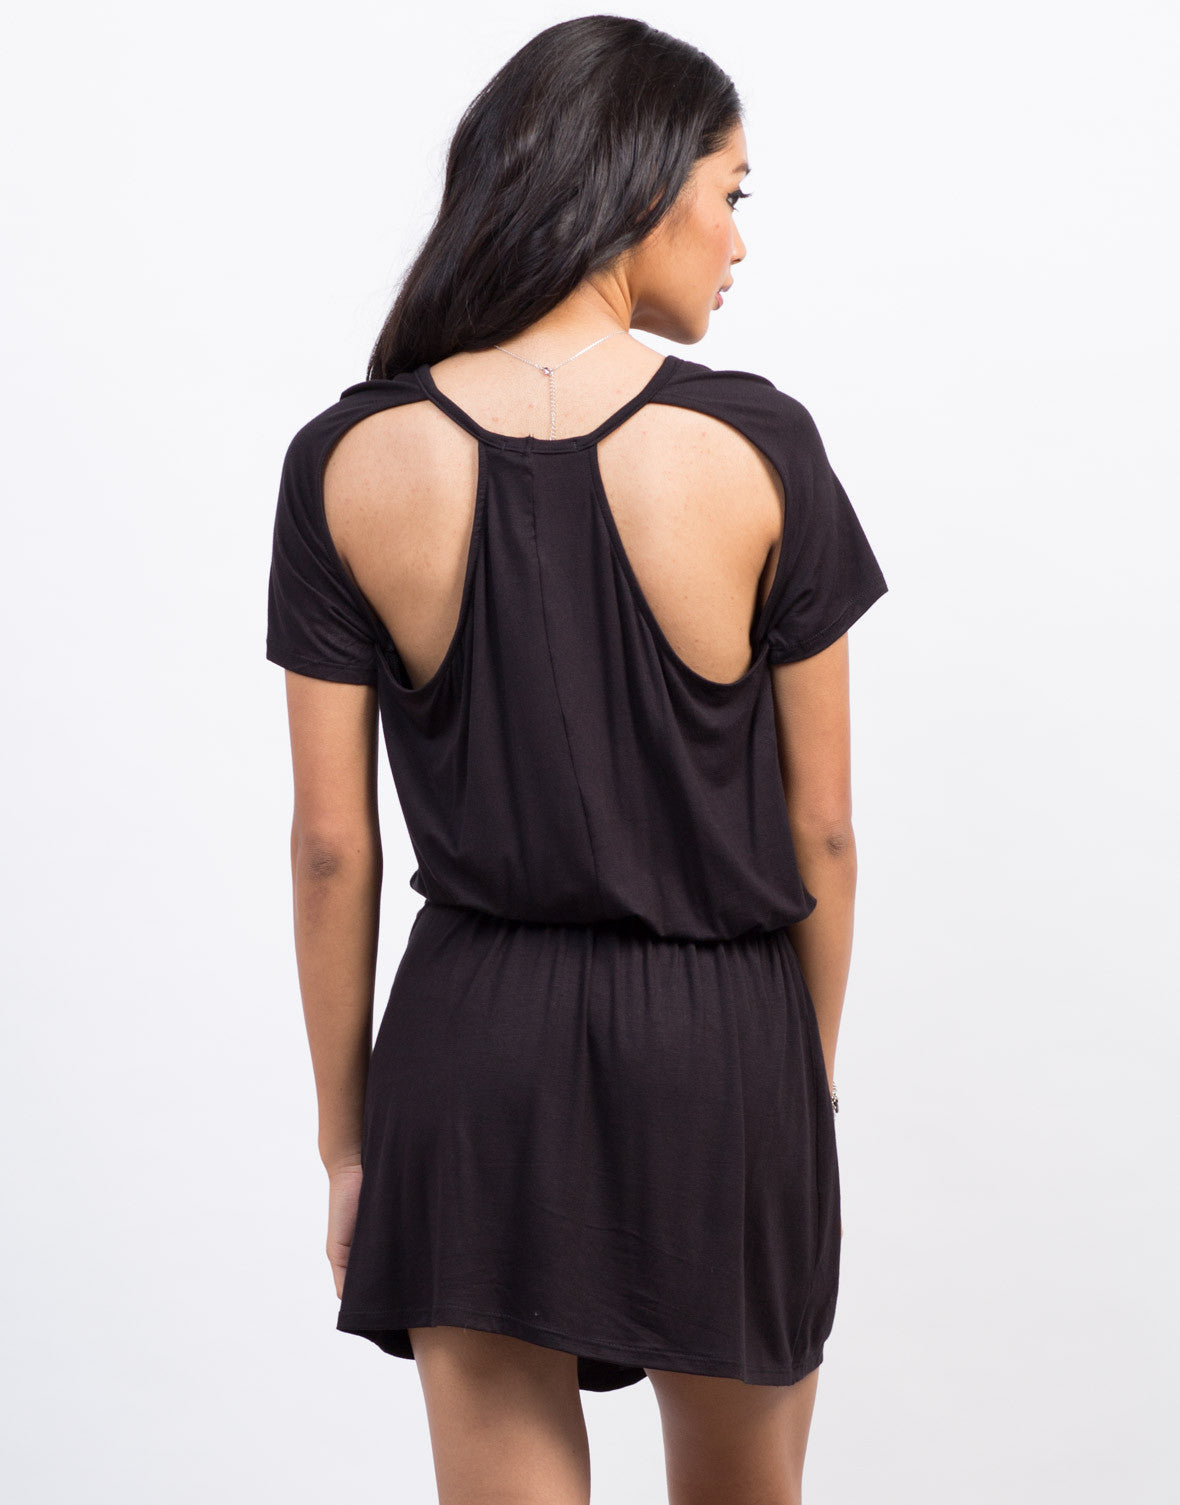 Back View of Cut Out T-Shirt Dress